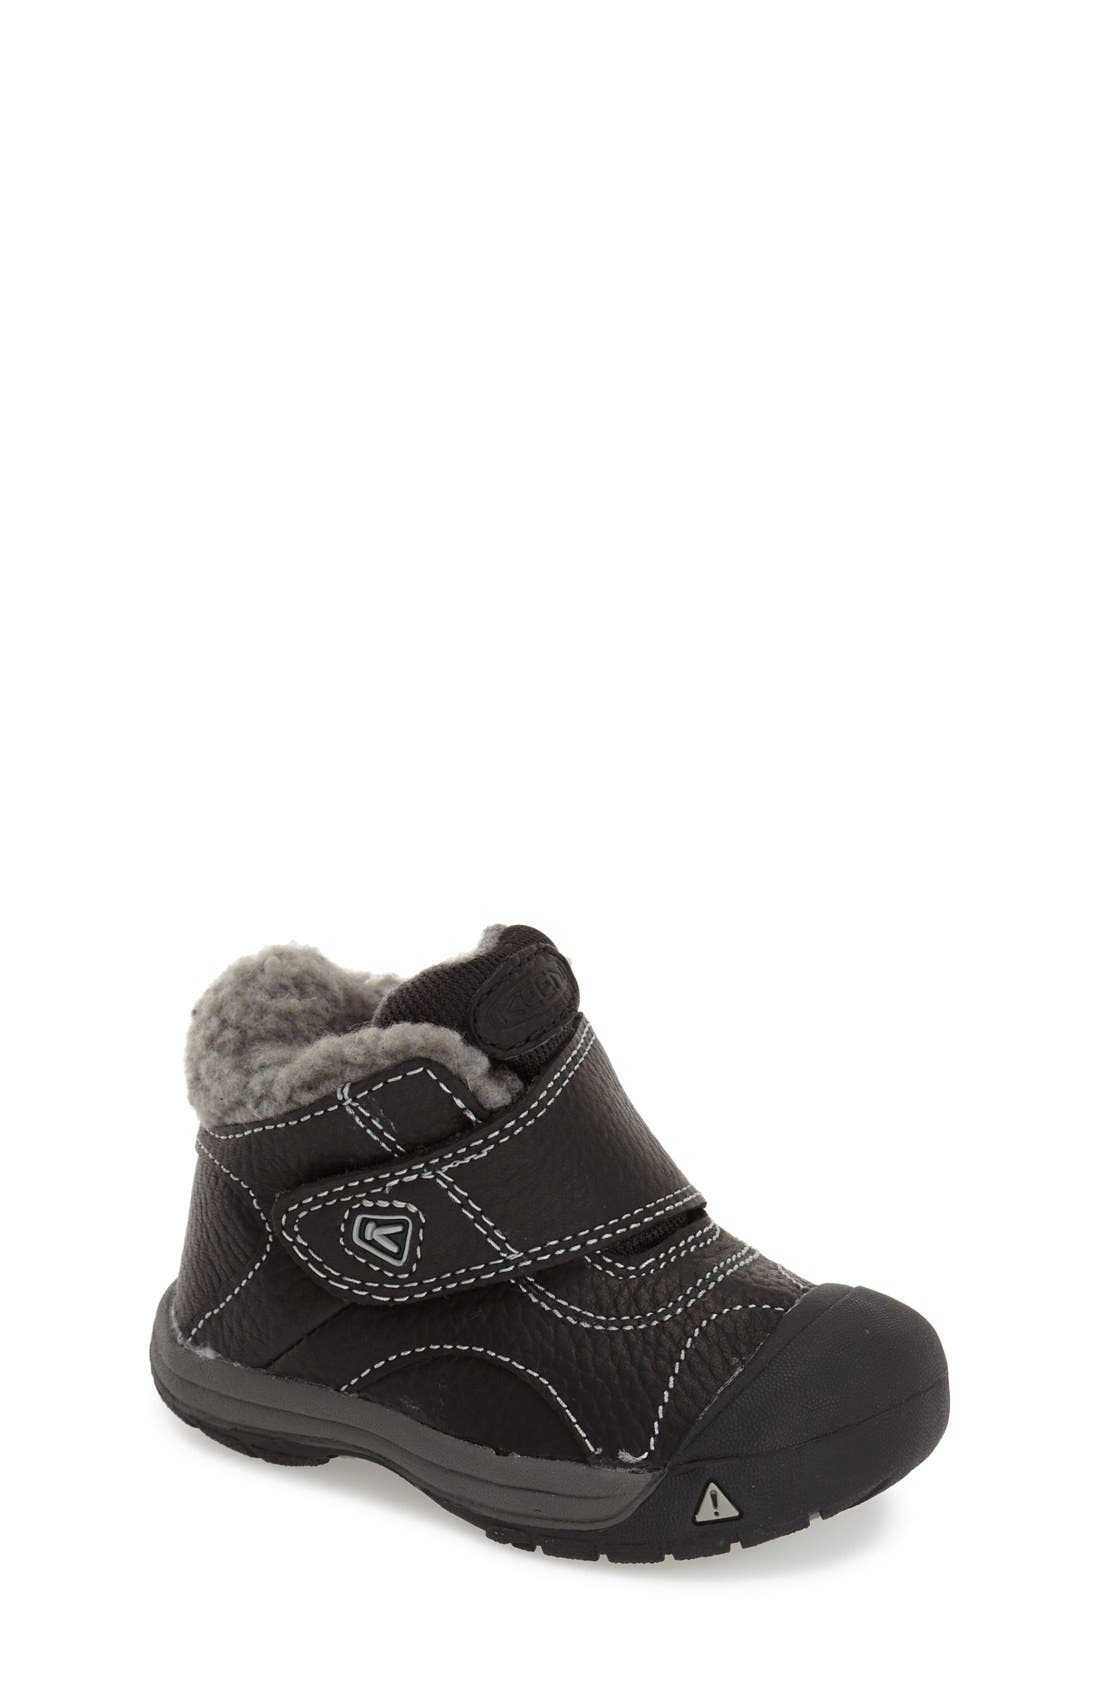 Keen 'Kootenay' Boot (Baby, Walker, Toddler & Little Kid)